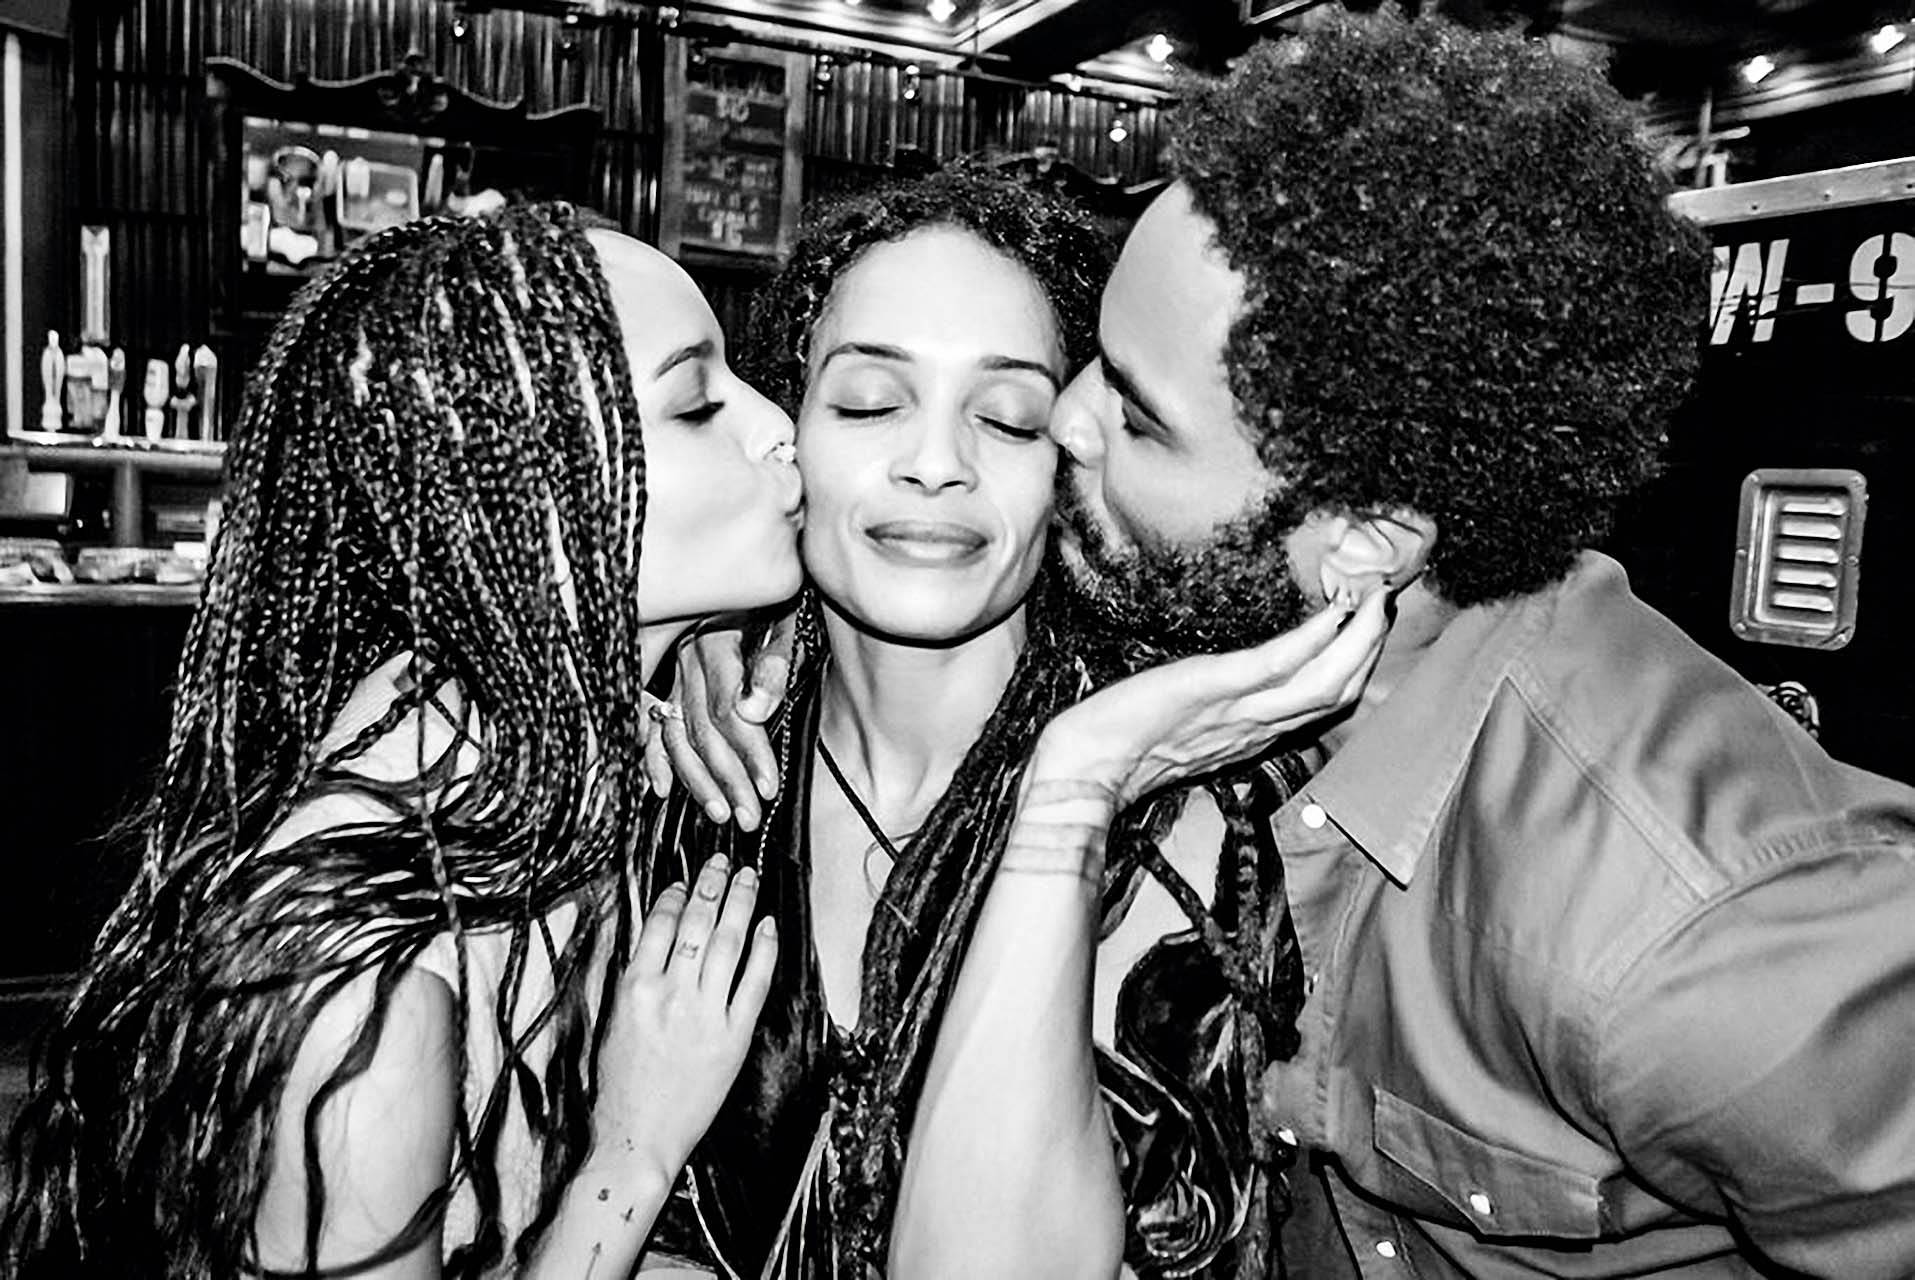 Lenny Kravitz has posted a photo on Twitter with the following remarks: Blood  Twitter, 2015-05-07 11:11:34.  Photo supplied by insight media. Service fee applies.  This is a private photo posted on social networks and supplied by this Agency. This Agency does not claim any ownership including but not limited to copyright or license in the attached material. Fees charged by this Agency are for Agency's services only, and do not, nor are they intended to, convey to the user any ownership of copyright or license in the material. By publishing this material you expressly agree to indemnify and to hold this Agency and its directors, shareholders and employees harmless from any loss, claims, damages, demands, expenses (including legal fees), or any causes of action or allegation against this Agency arising out of or connected in any way with publication of the material., Image: 242966318, License: Rights-managed, Restrictions: Photo supplied by insight media. For editorial use only. Single rate handling fee required., Model Release: no, Credit line: Profimedia, Insight Media